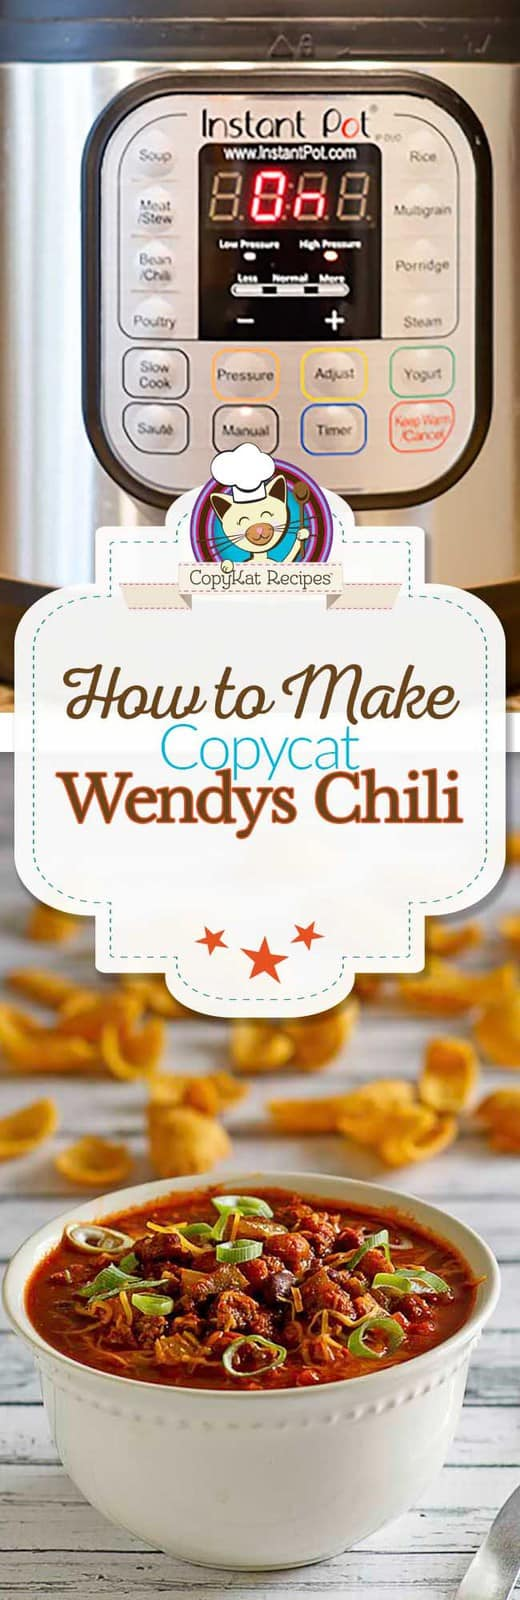 Make your own version of copycat Instant Pot Wendys Chili at home.